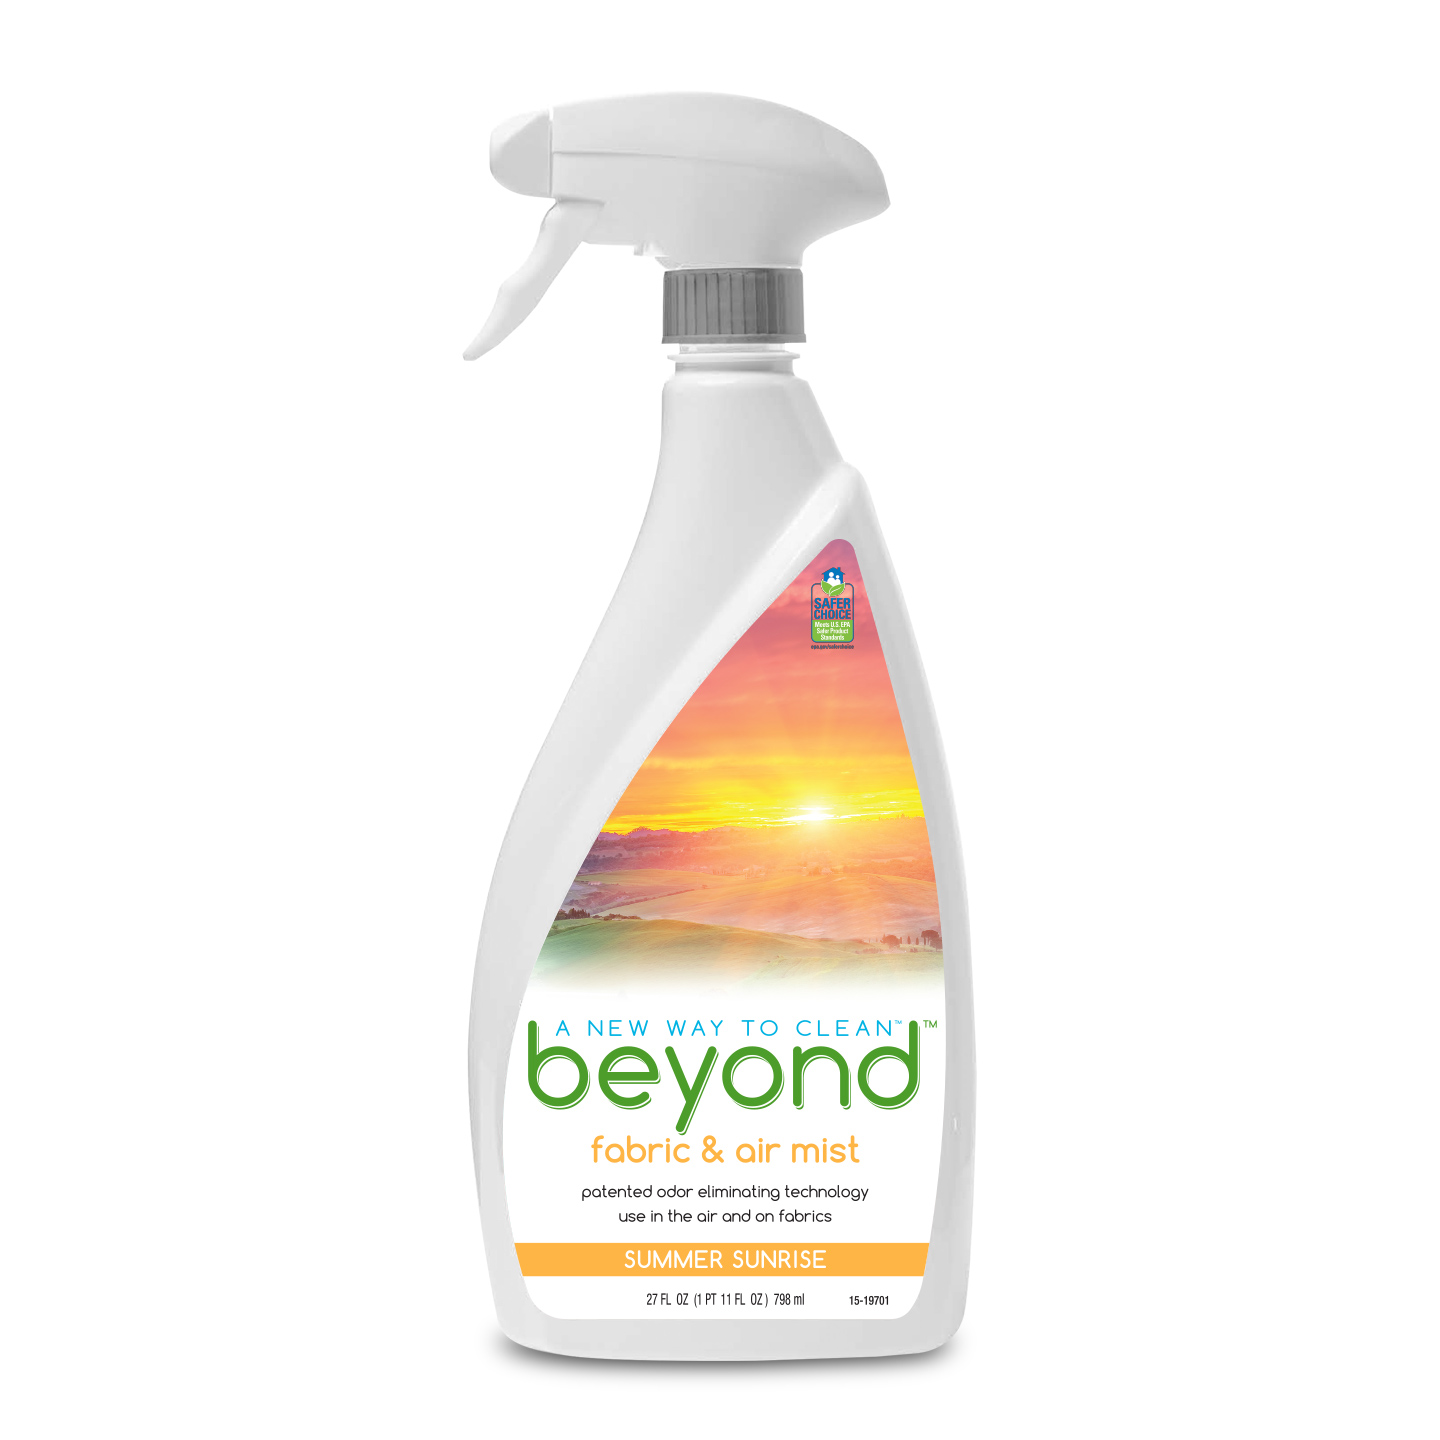 Beyond™ Fabric & Air Mist, Summer Sunrise spray bottle